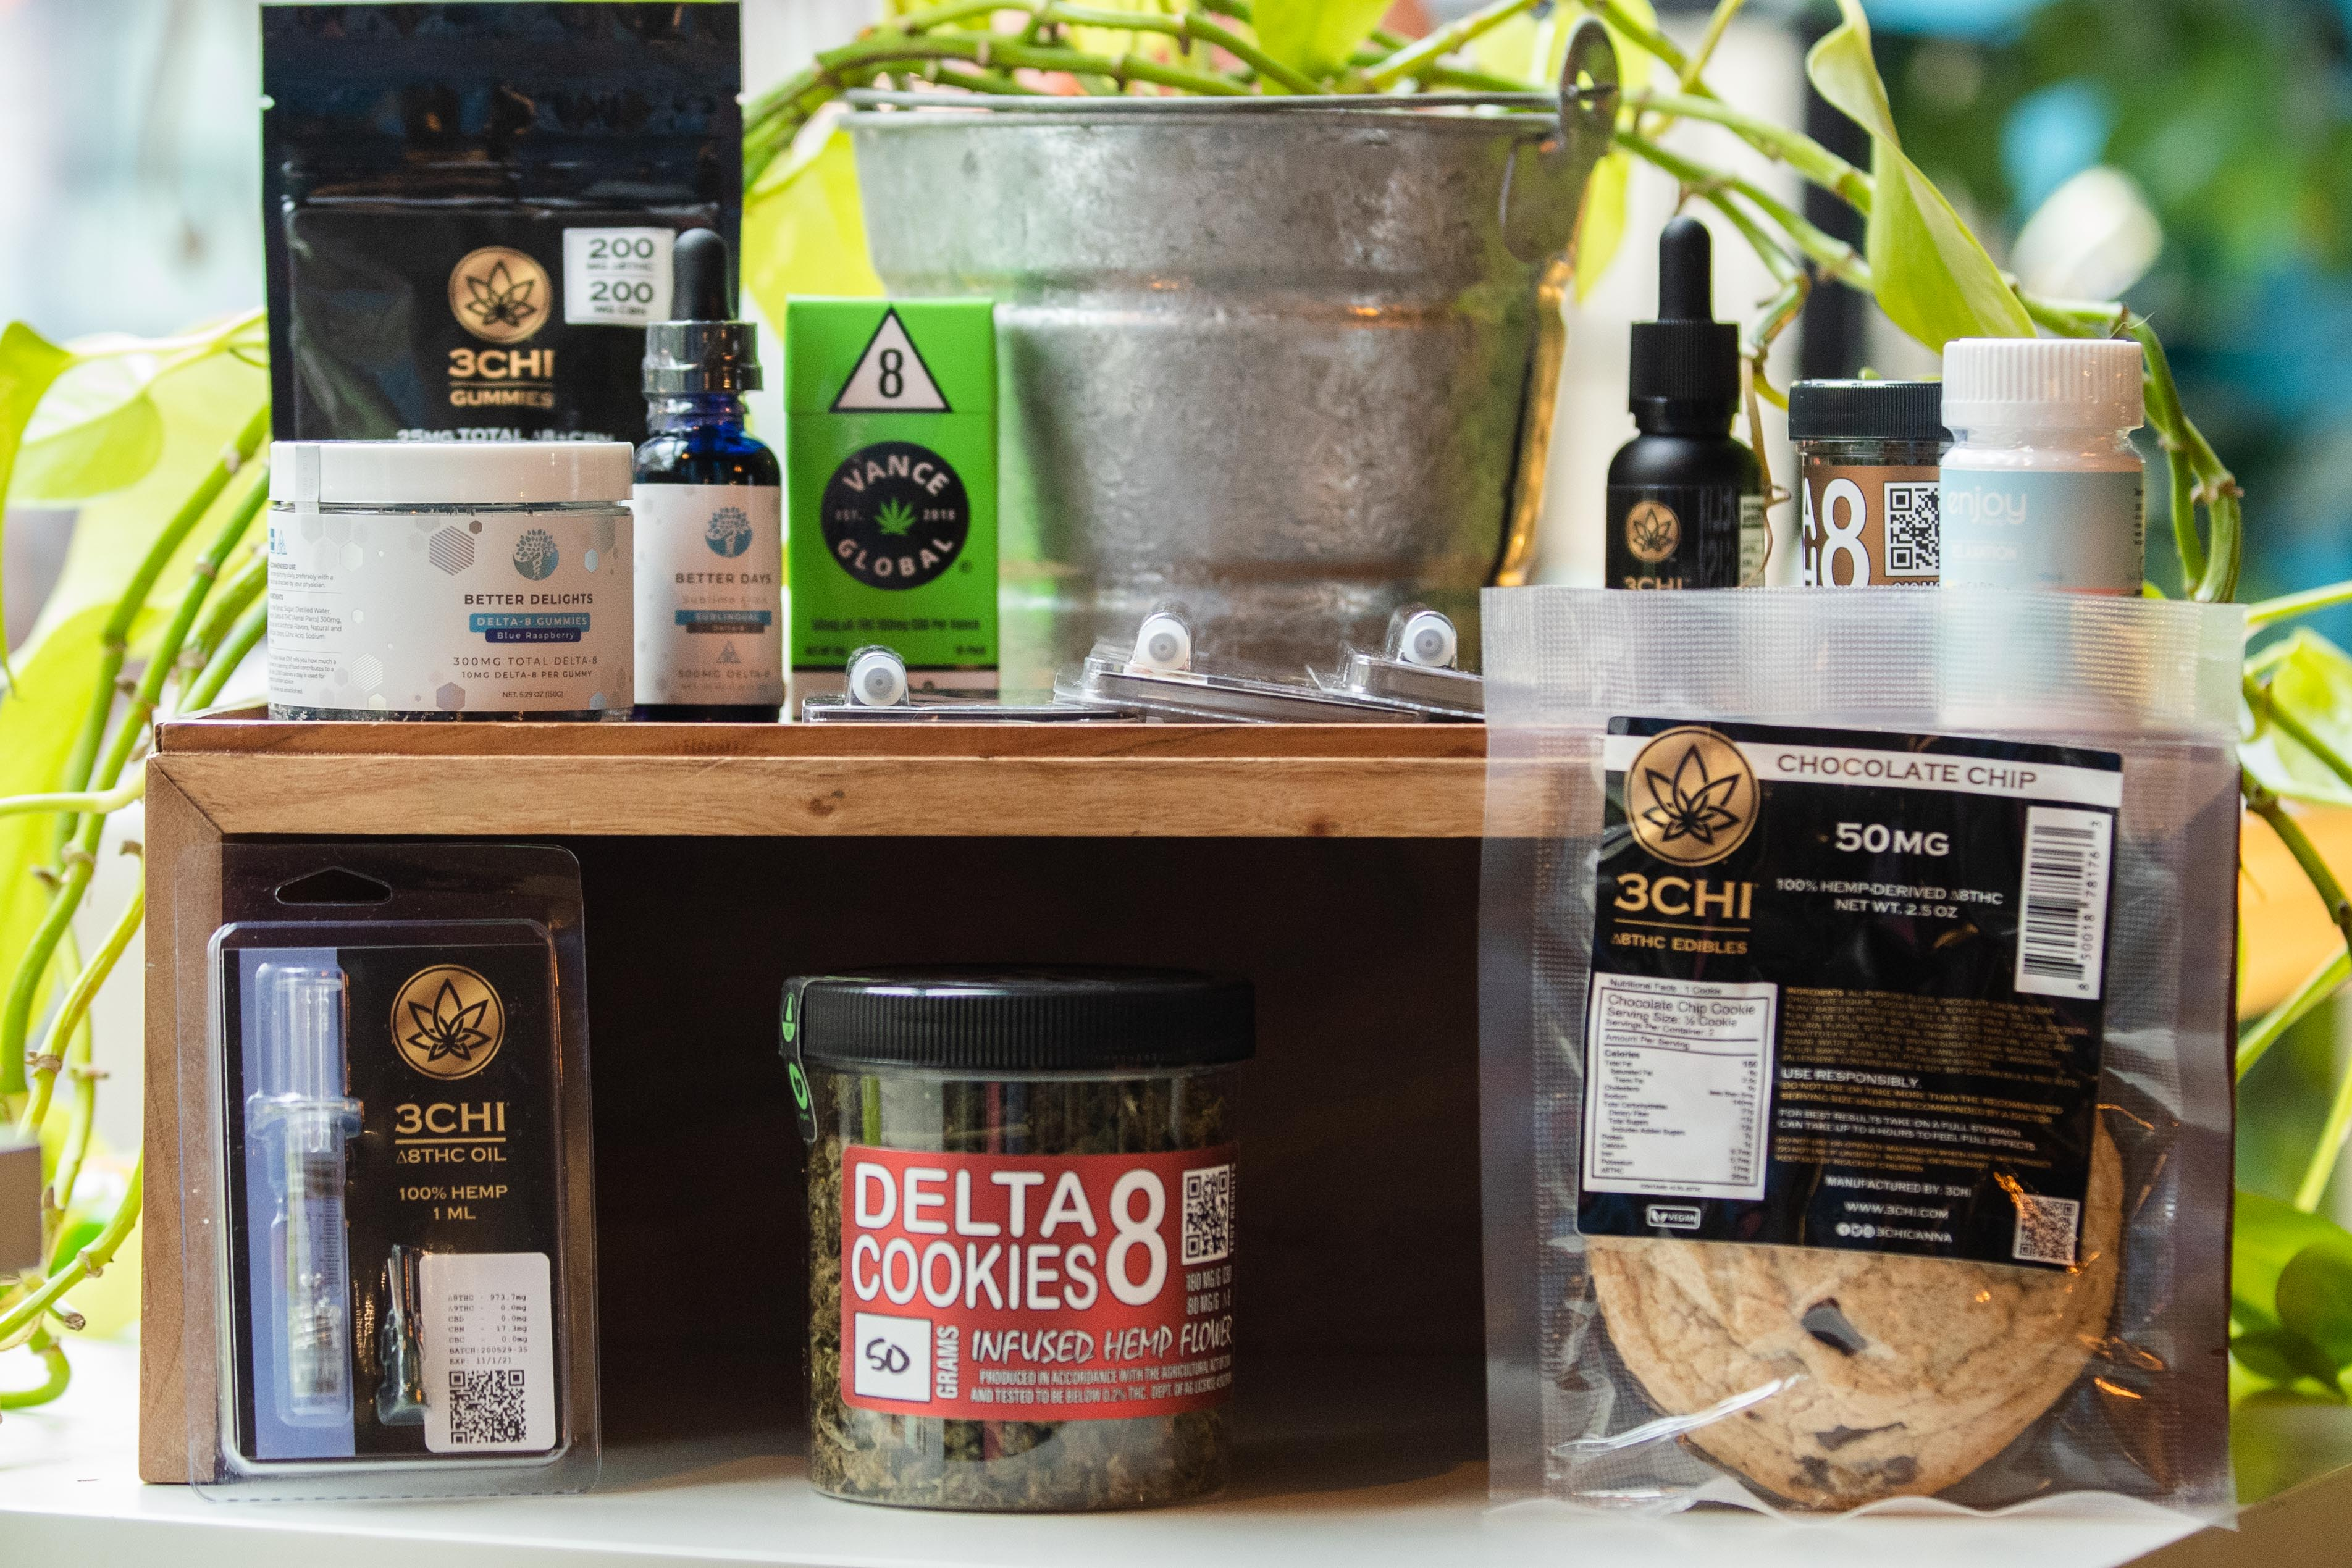 Products containing Delta-8-THC are displayed at Botanic Alternatives, located at 2497 N. Milwaukee Ave. in the Logan Square neighborhood, Thursday afternoon, April 8, 2021.